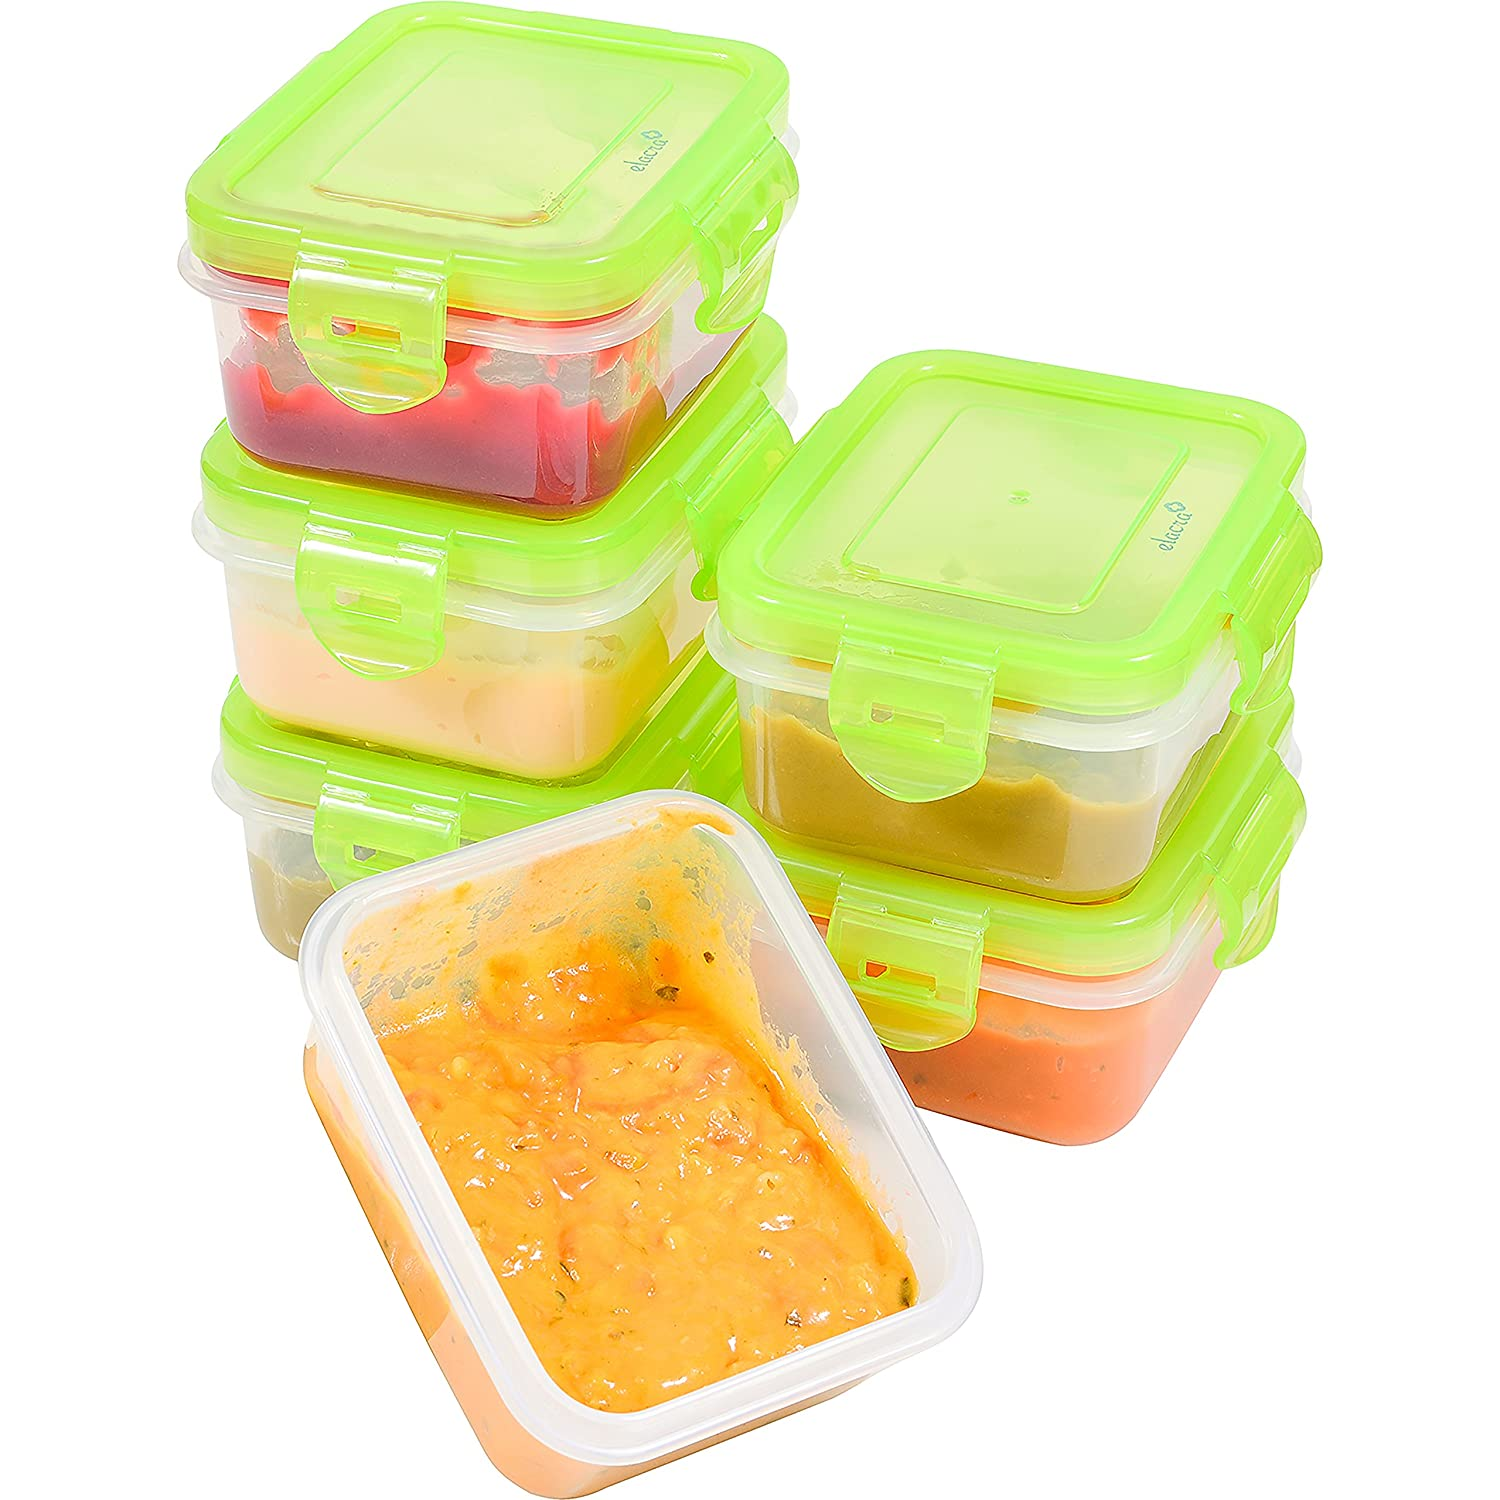 Elacra [6oz, 6-Pack] Baby Food Storage, Small Plastic Containers with BPA-Free Airtight and Leakproof Lids, Freezer & Microwave Safe